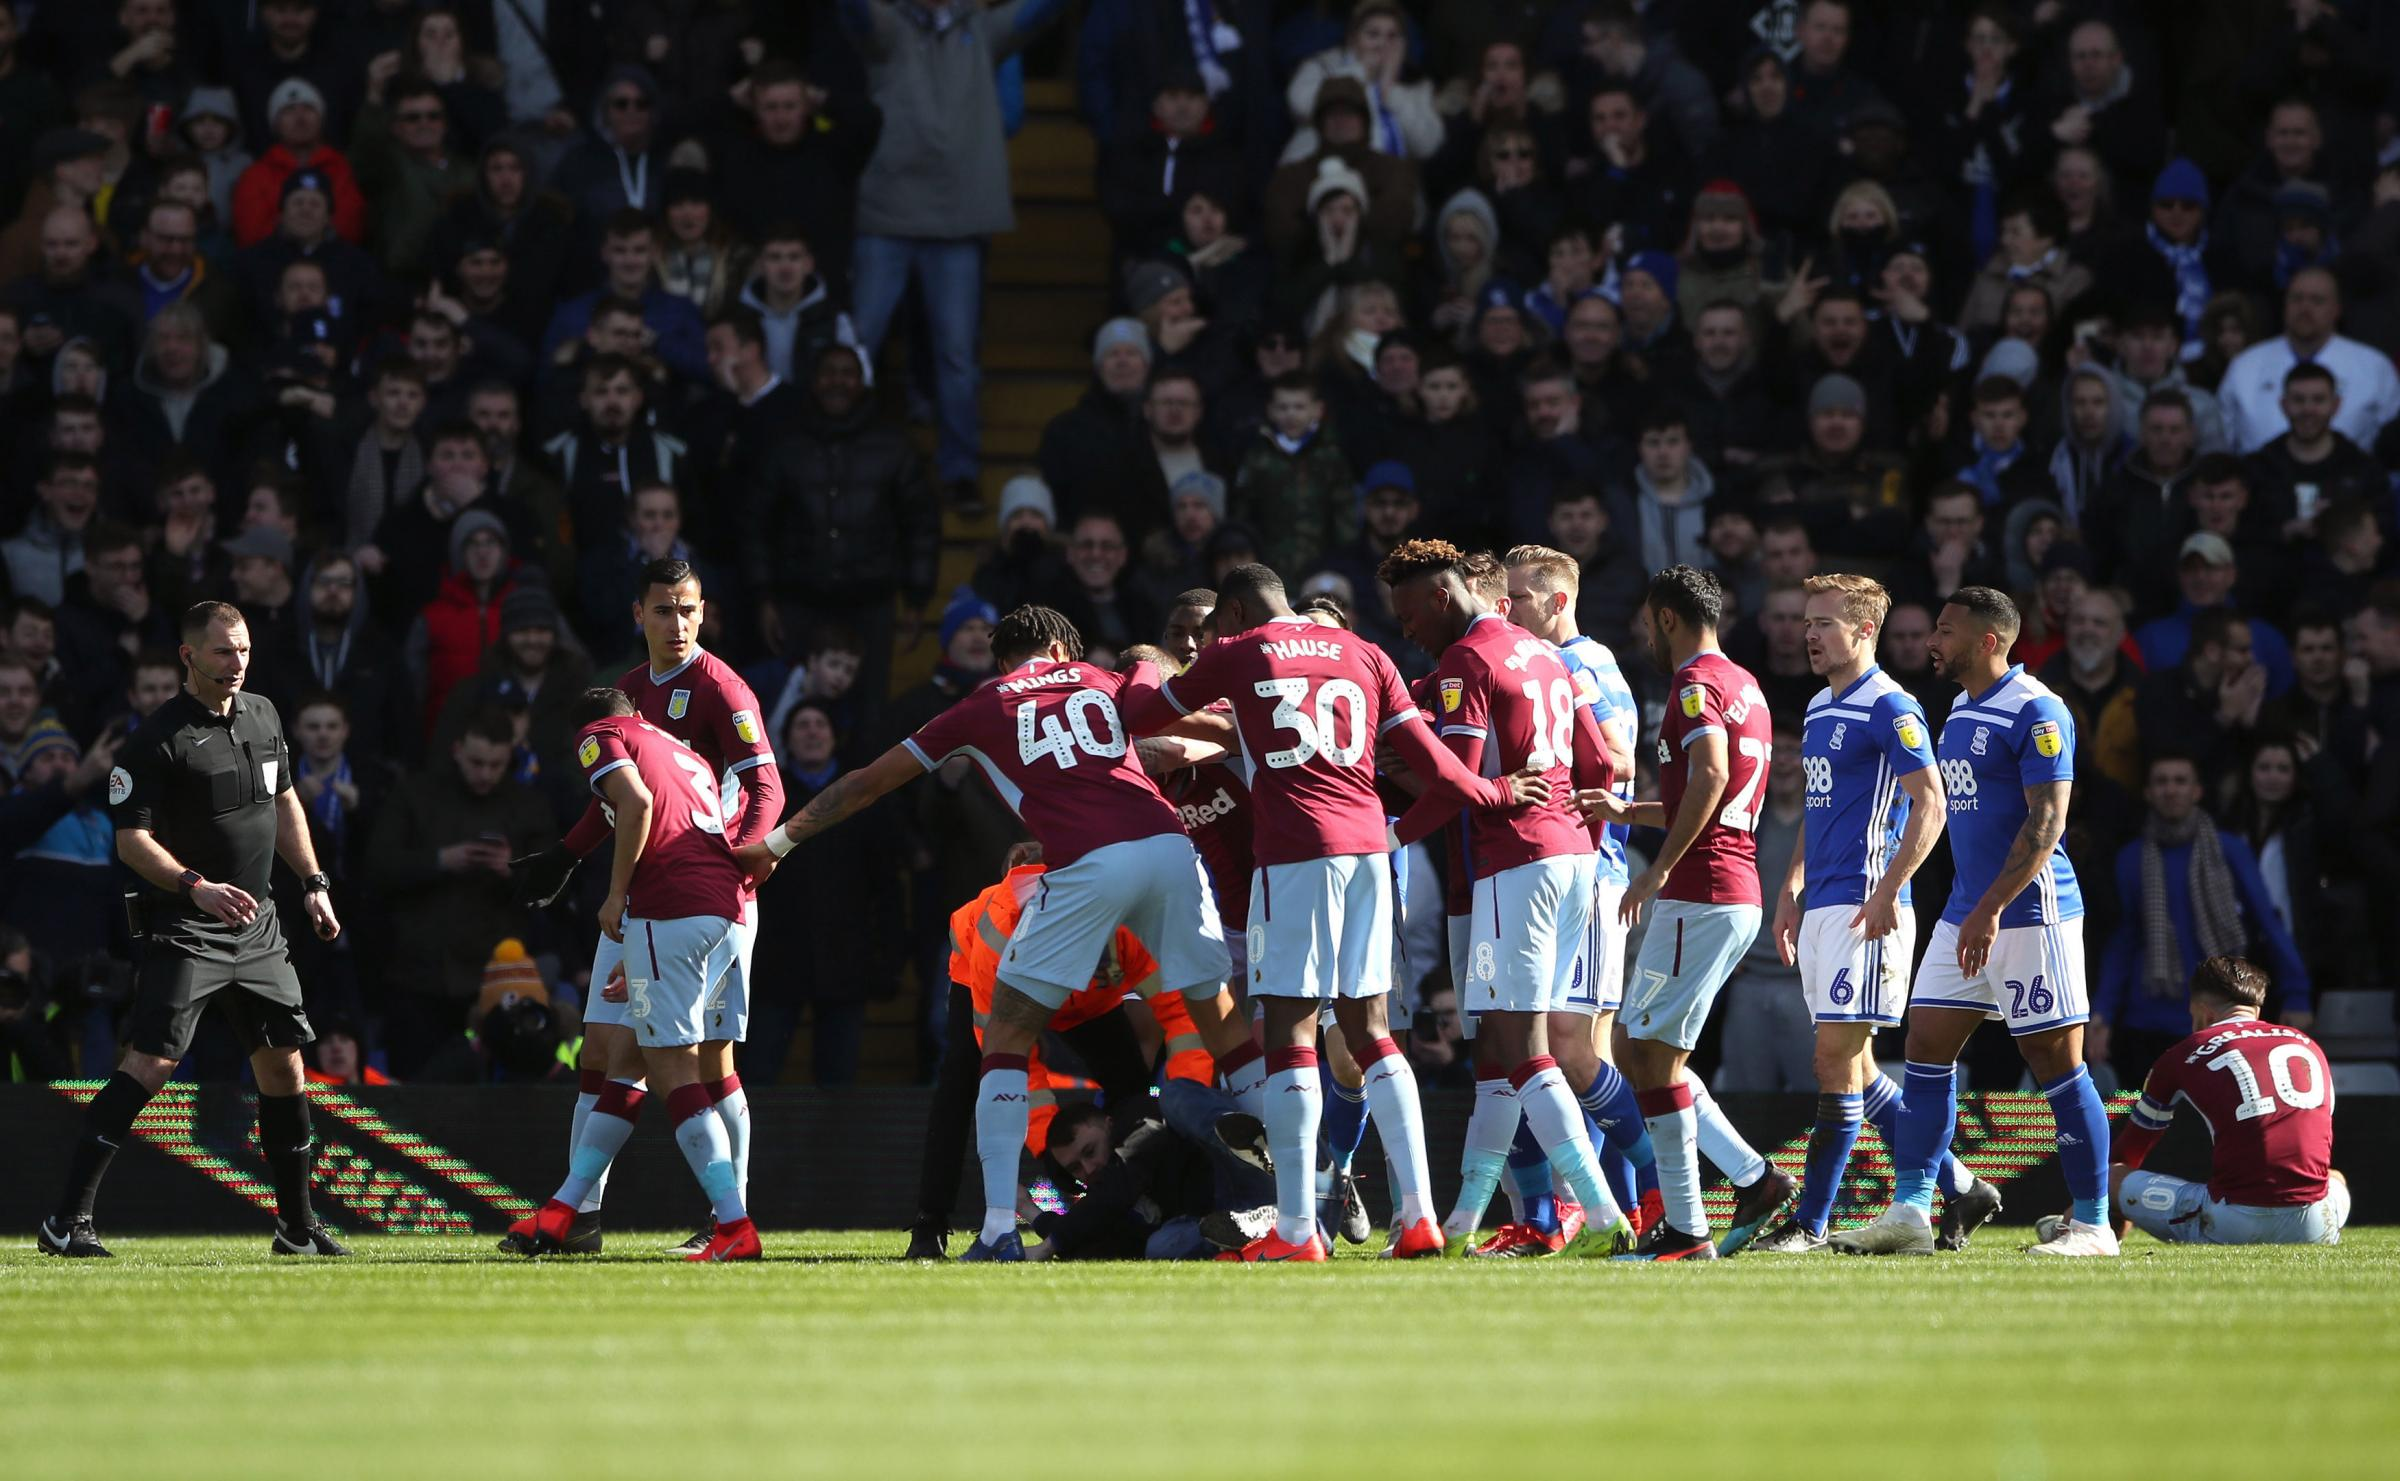 A fan attacks Aston Villa's Jack Grealish on the pitch (right) during the Sky Bet Championship match at St Andrew's Trillion Trophy Stadium, Birmingham. PRESS ASSOCIATION Photo. Picture date: Sunday March 10, 2019. See PA story SOCCER Birmingham.